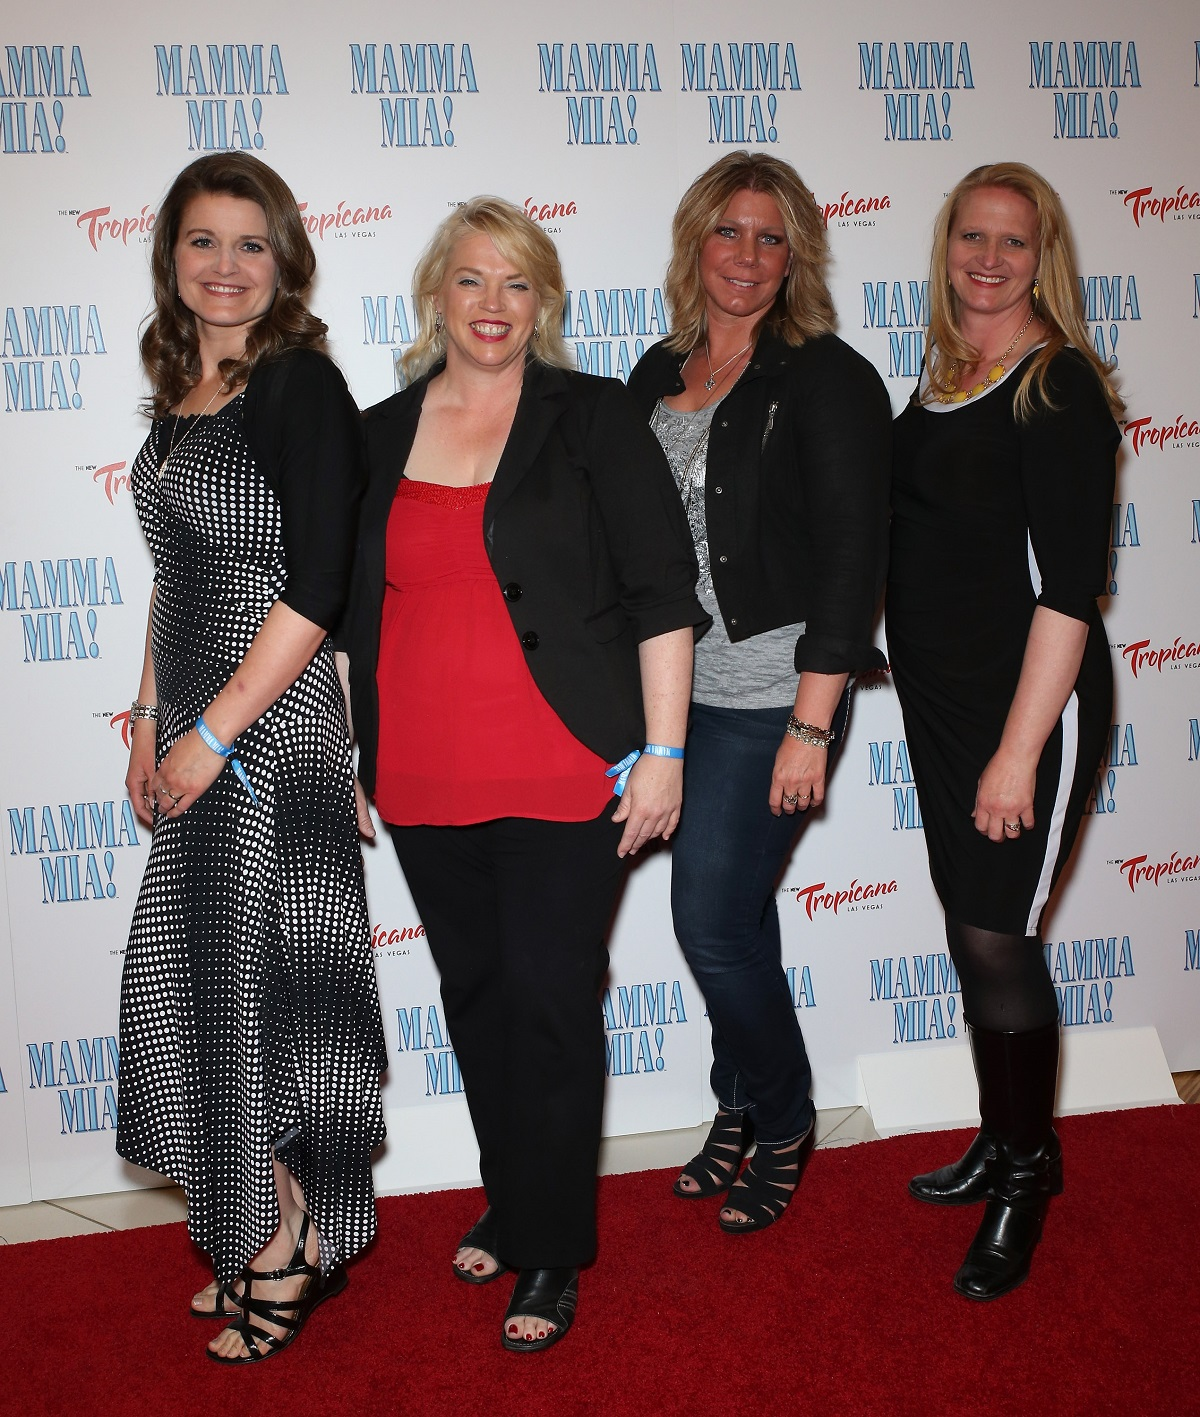 Robyn, Janelle, Meri, and Christine Brown from 'Sister Wives' lined up on the red carpet at 'Mamma Mia!' in Las Vegas